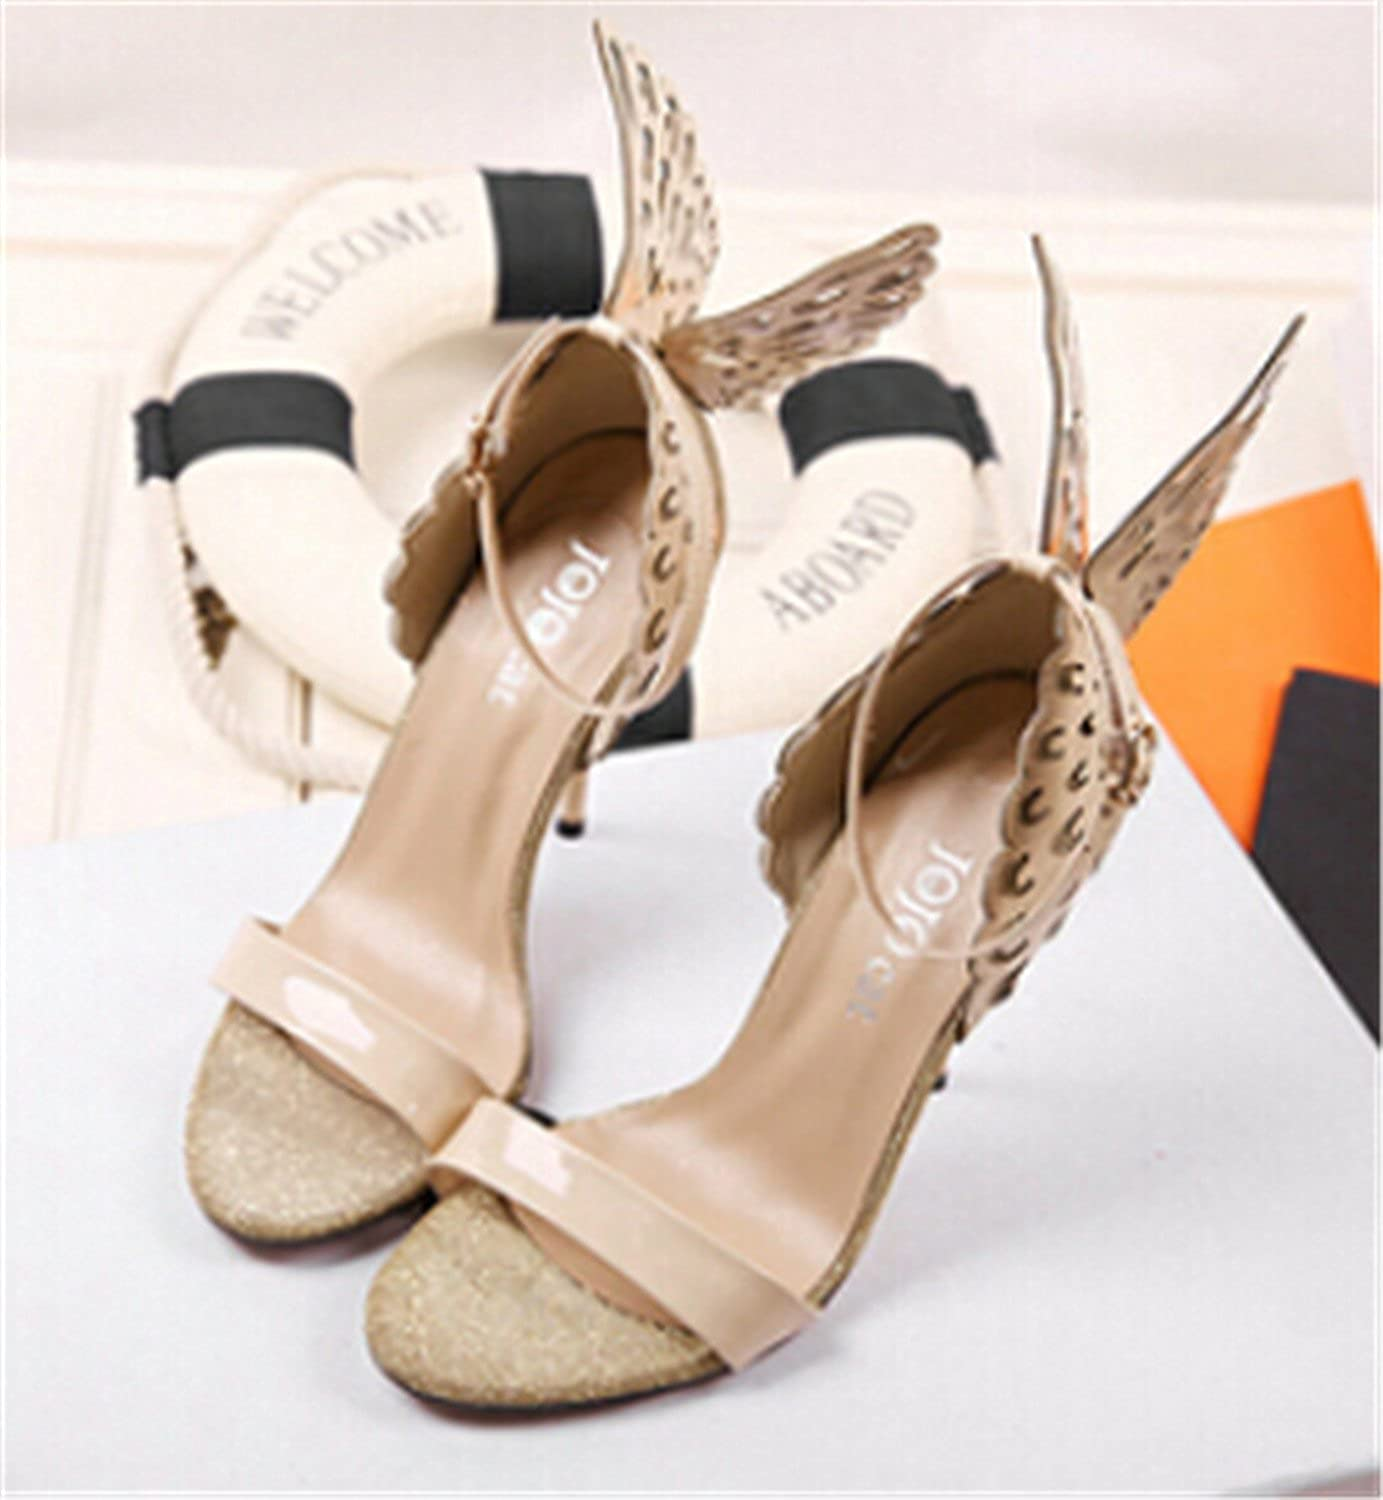 Robert Westbrook Butterfly Wings Women High Heels Bowtie Summer shoes Sandals Woman Pointed Toe Ankle Strap shoes Pumps